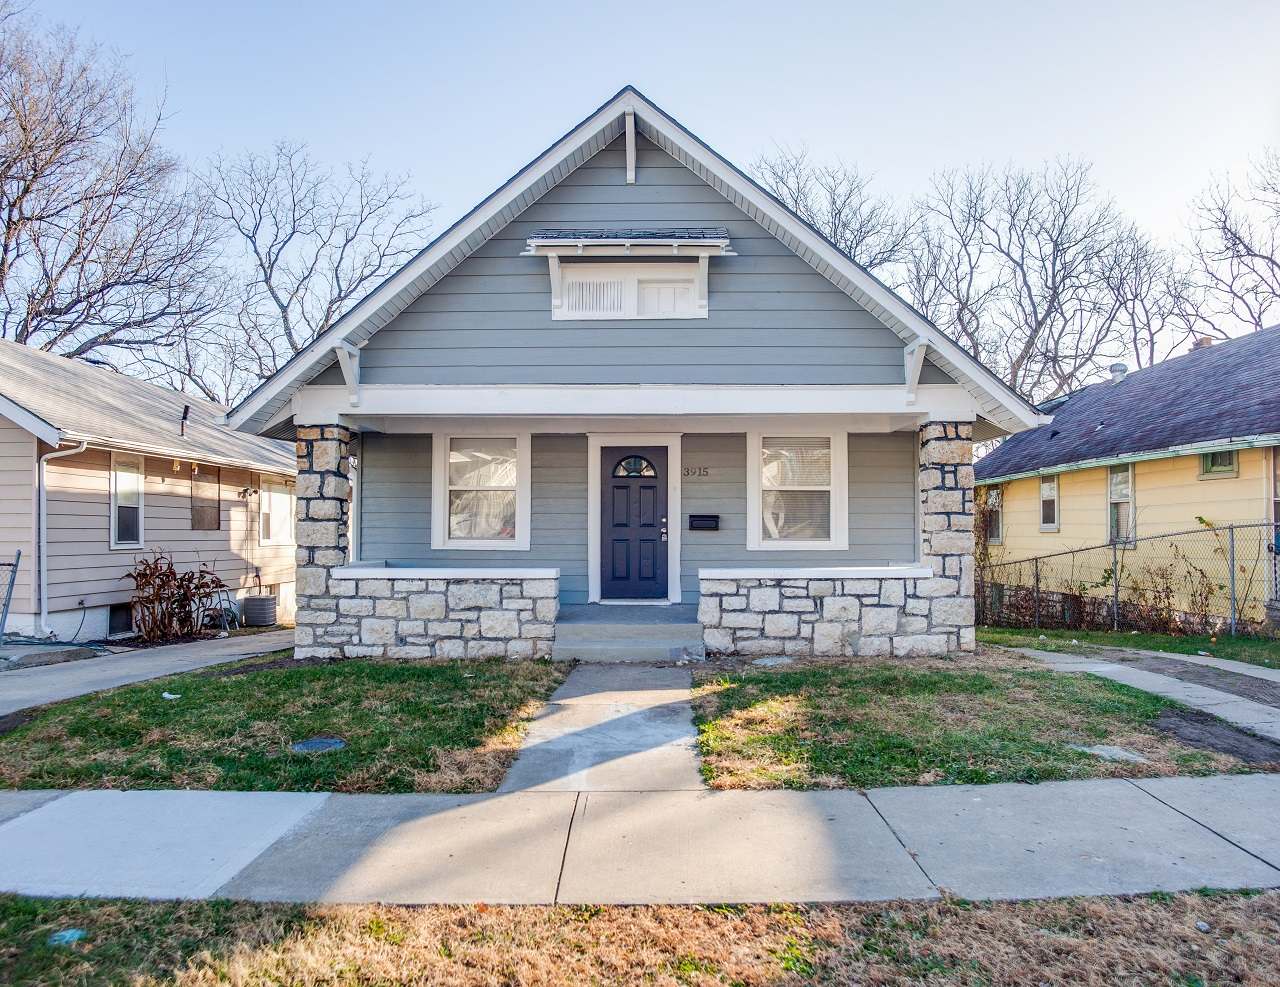 3915 norton ave house featured image